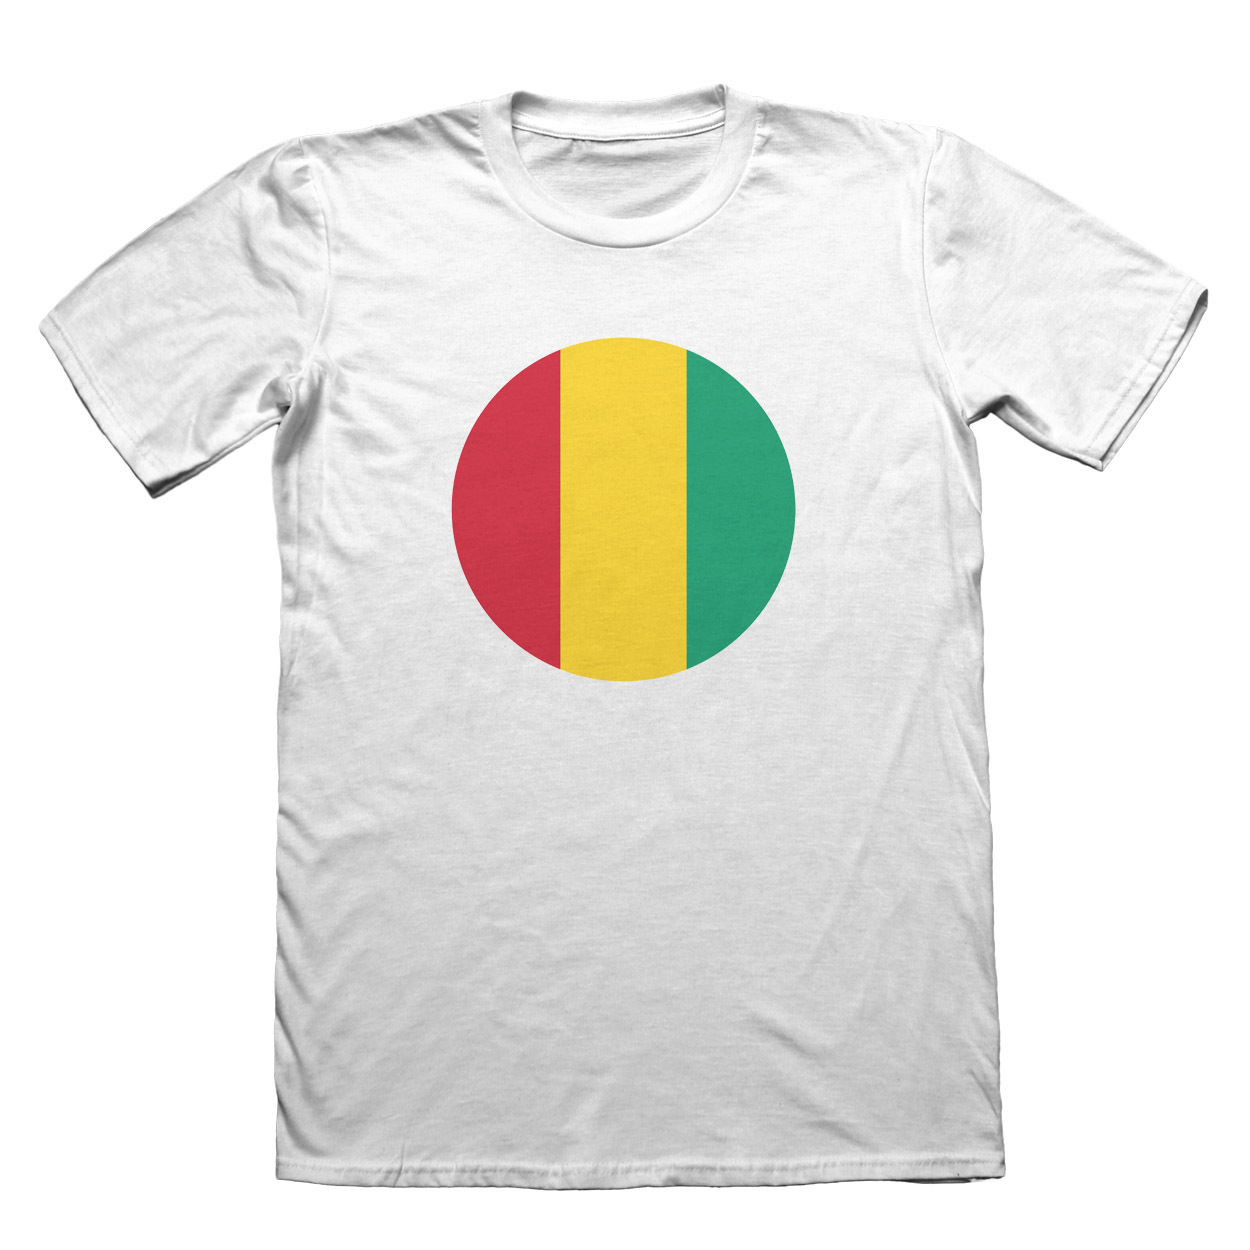 Guinea Flag T-Shirt - Mens Fathers Day Christmas Short Sleeve Round Neck T Shirt Promotion Summer 2018 100% Cotton